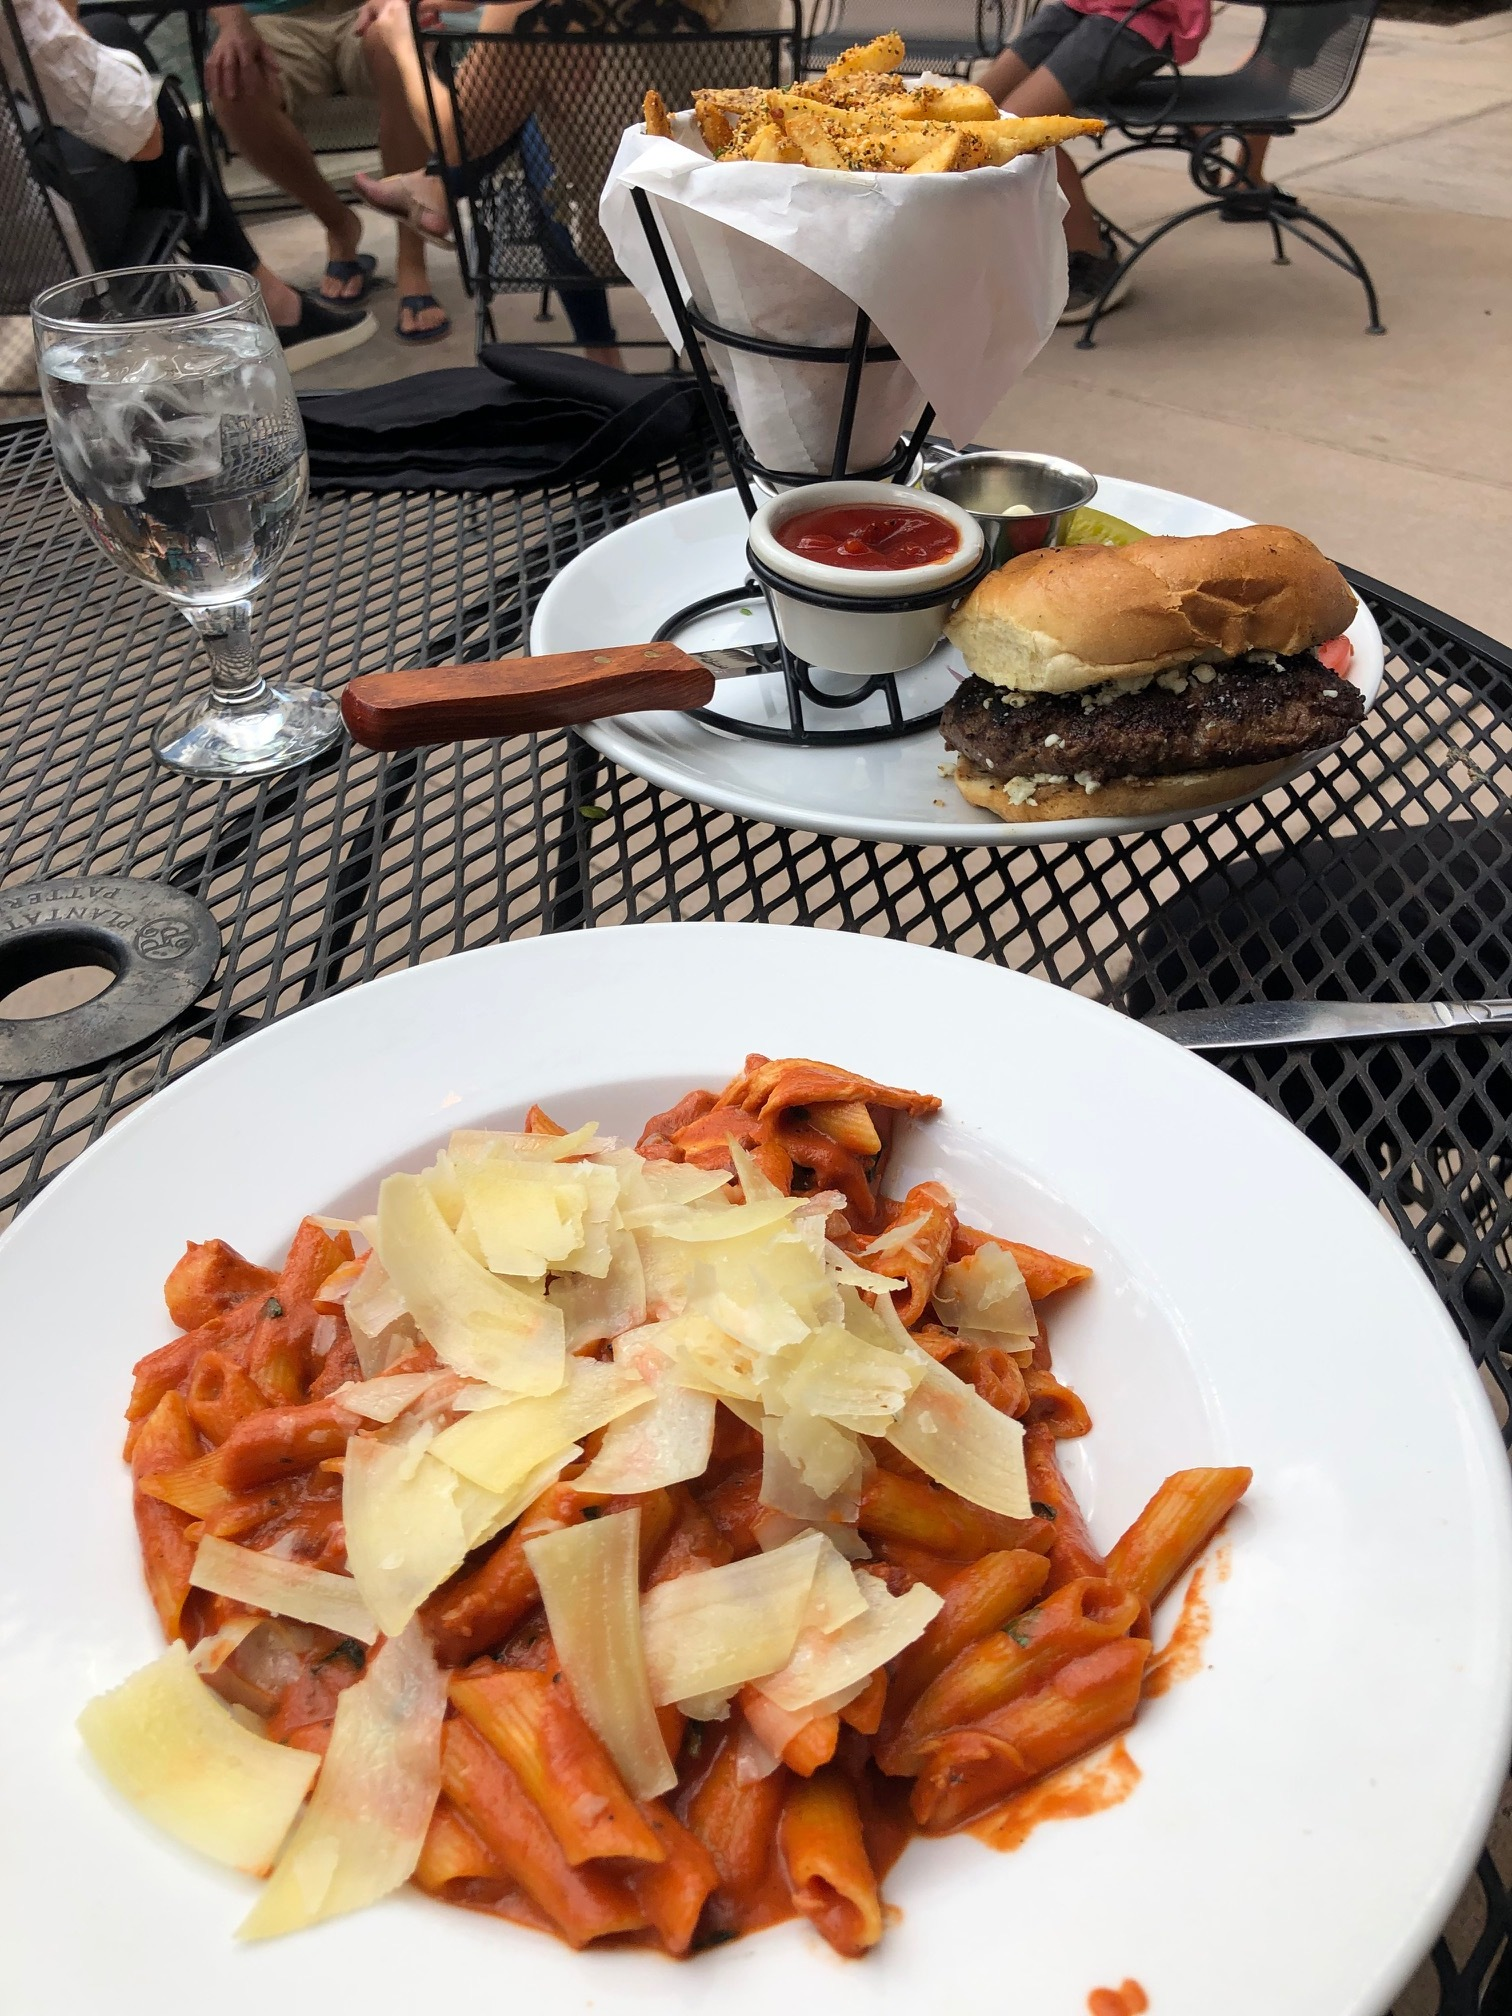 Blue cheese burger with fries and chicken penne pasta - so delicious!!